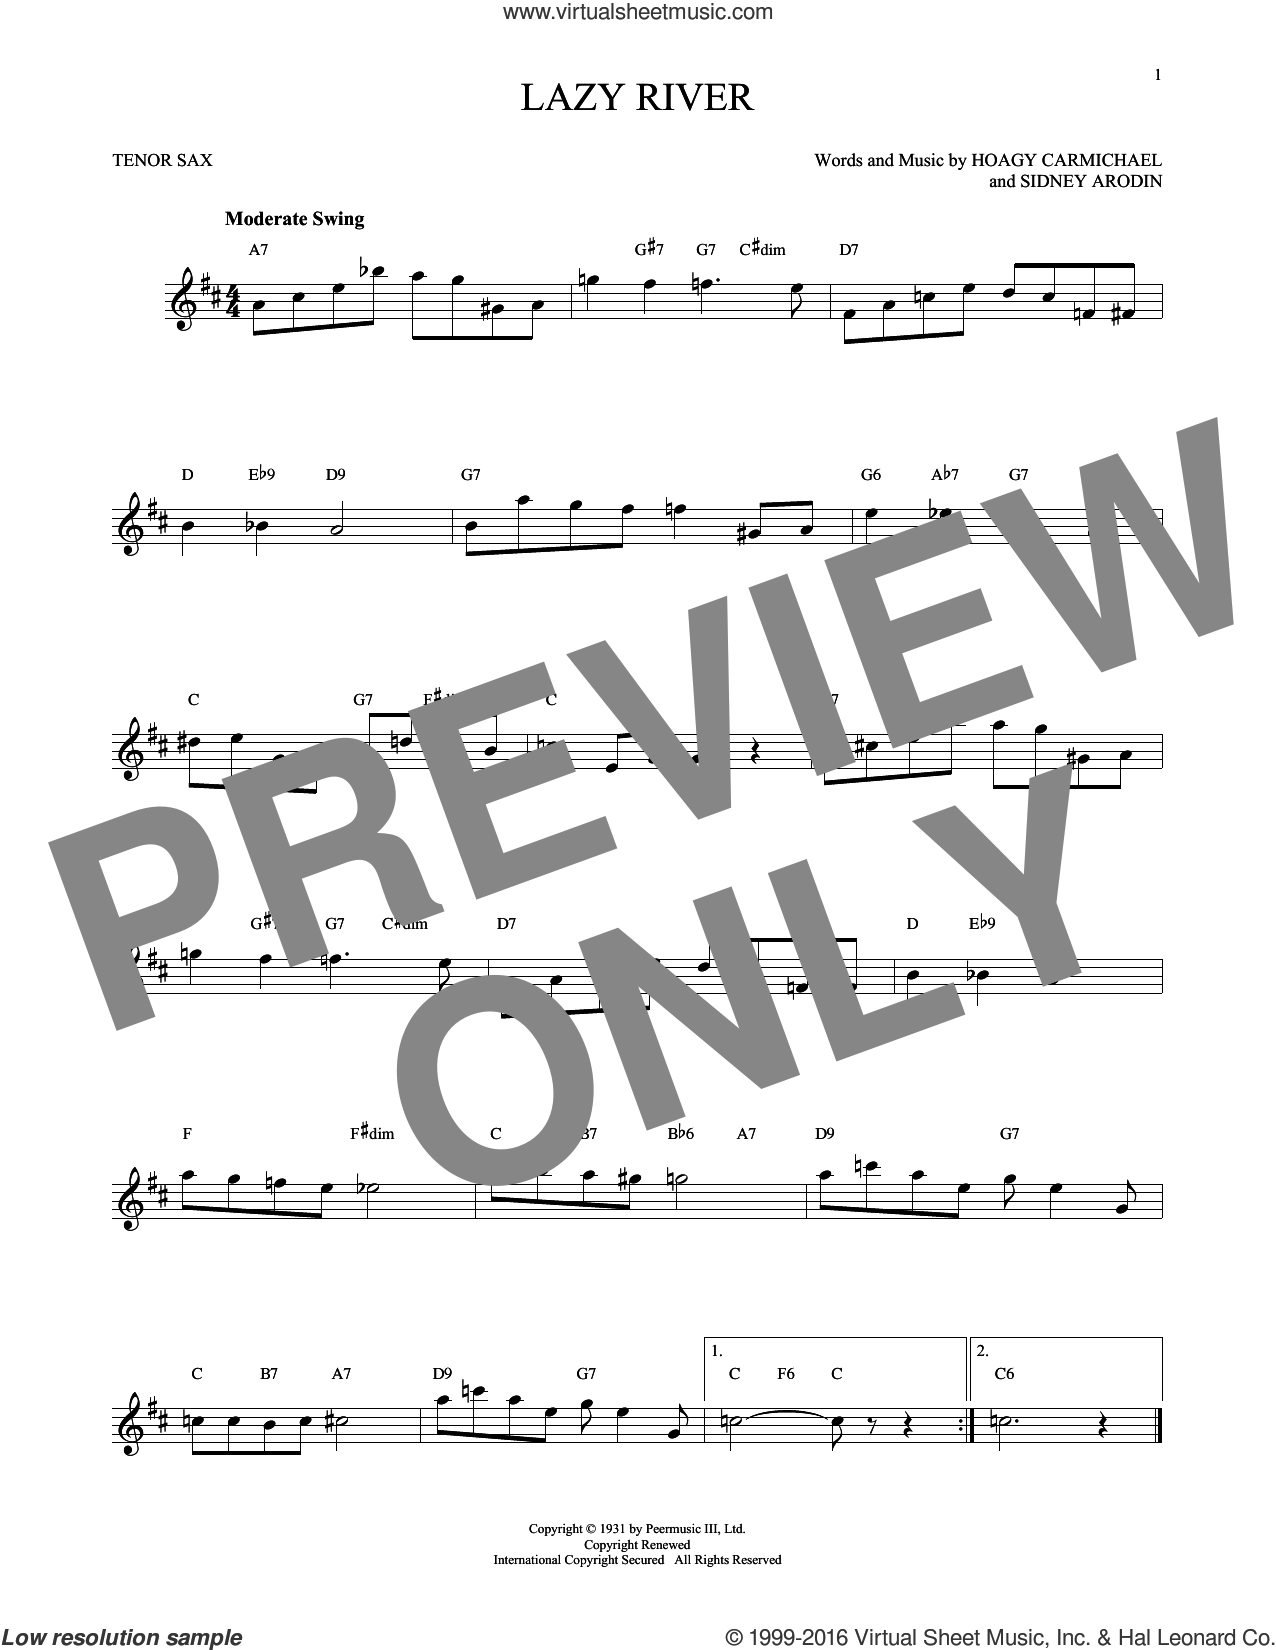 Lazy River sheet music for tenor saxophone solo by Hoagy Carmichael, Bobby Darin and Sidney Arodin, intermediate skill level